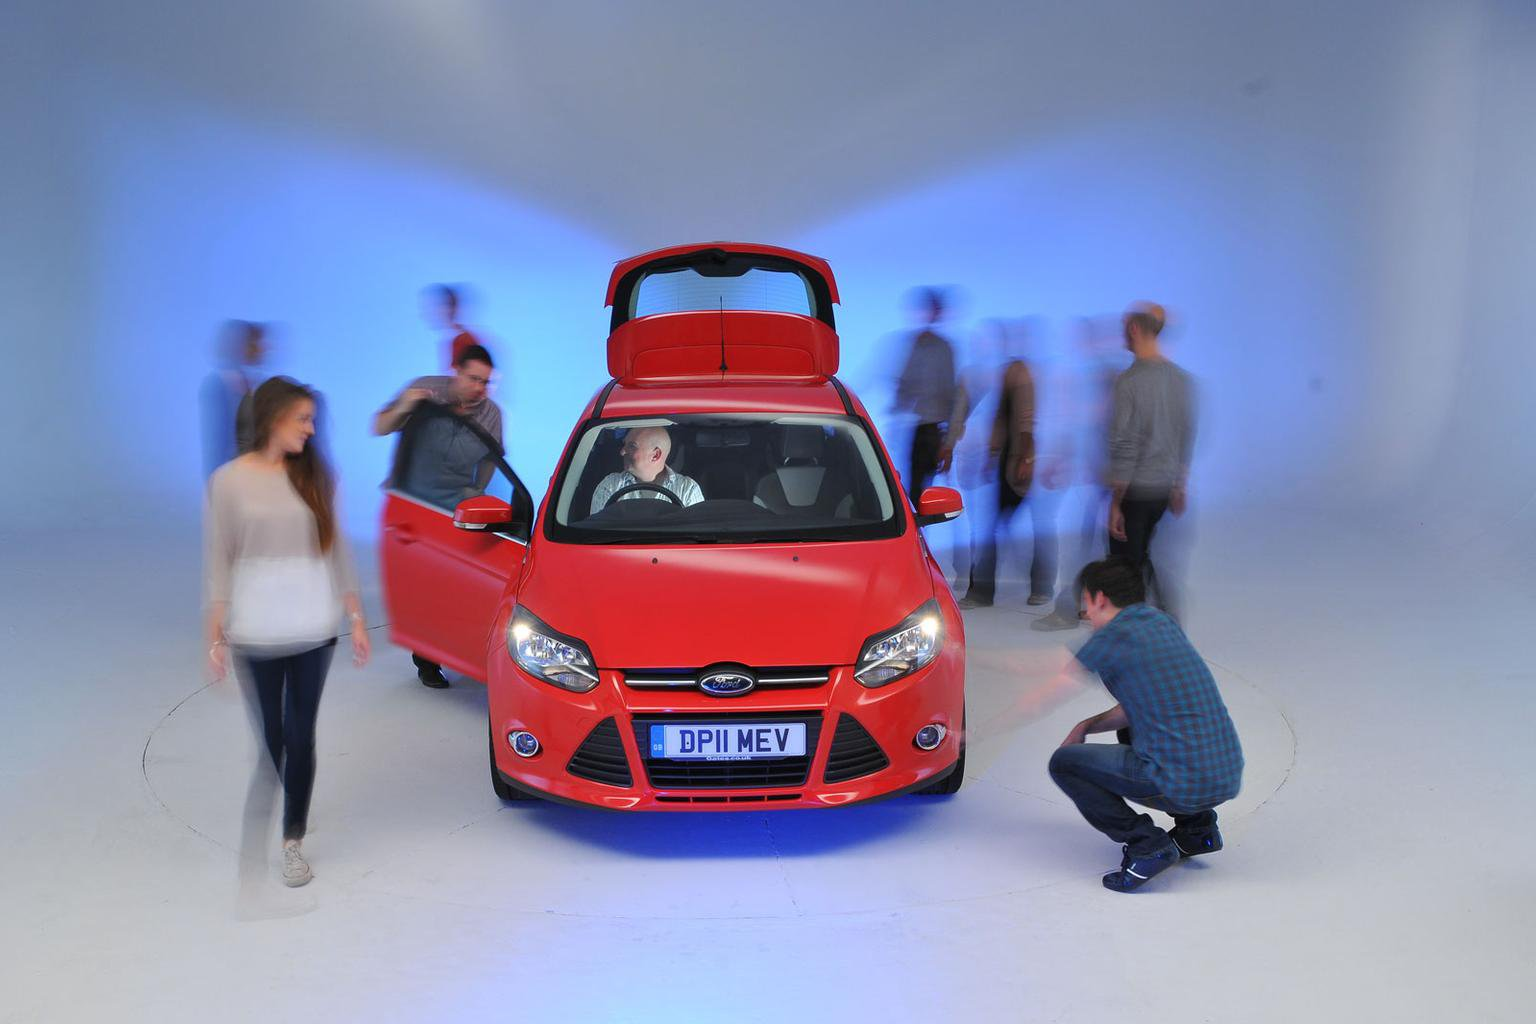 Britain's best used cars revealed by What Car?